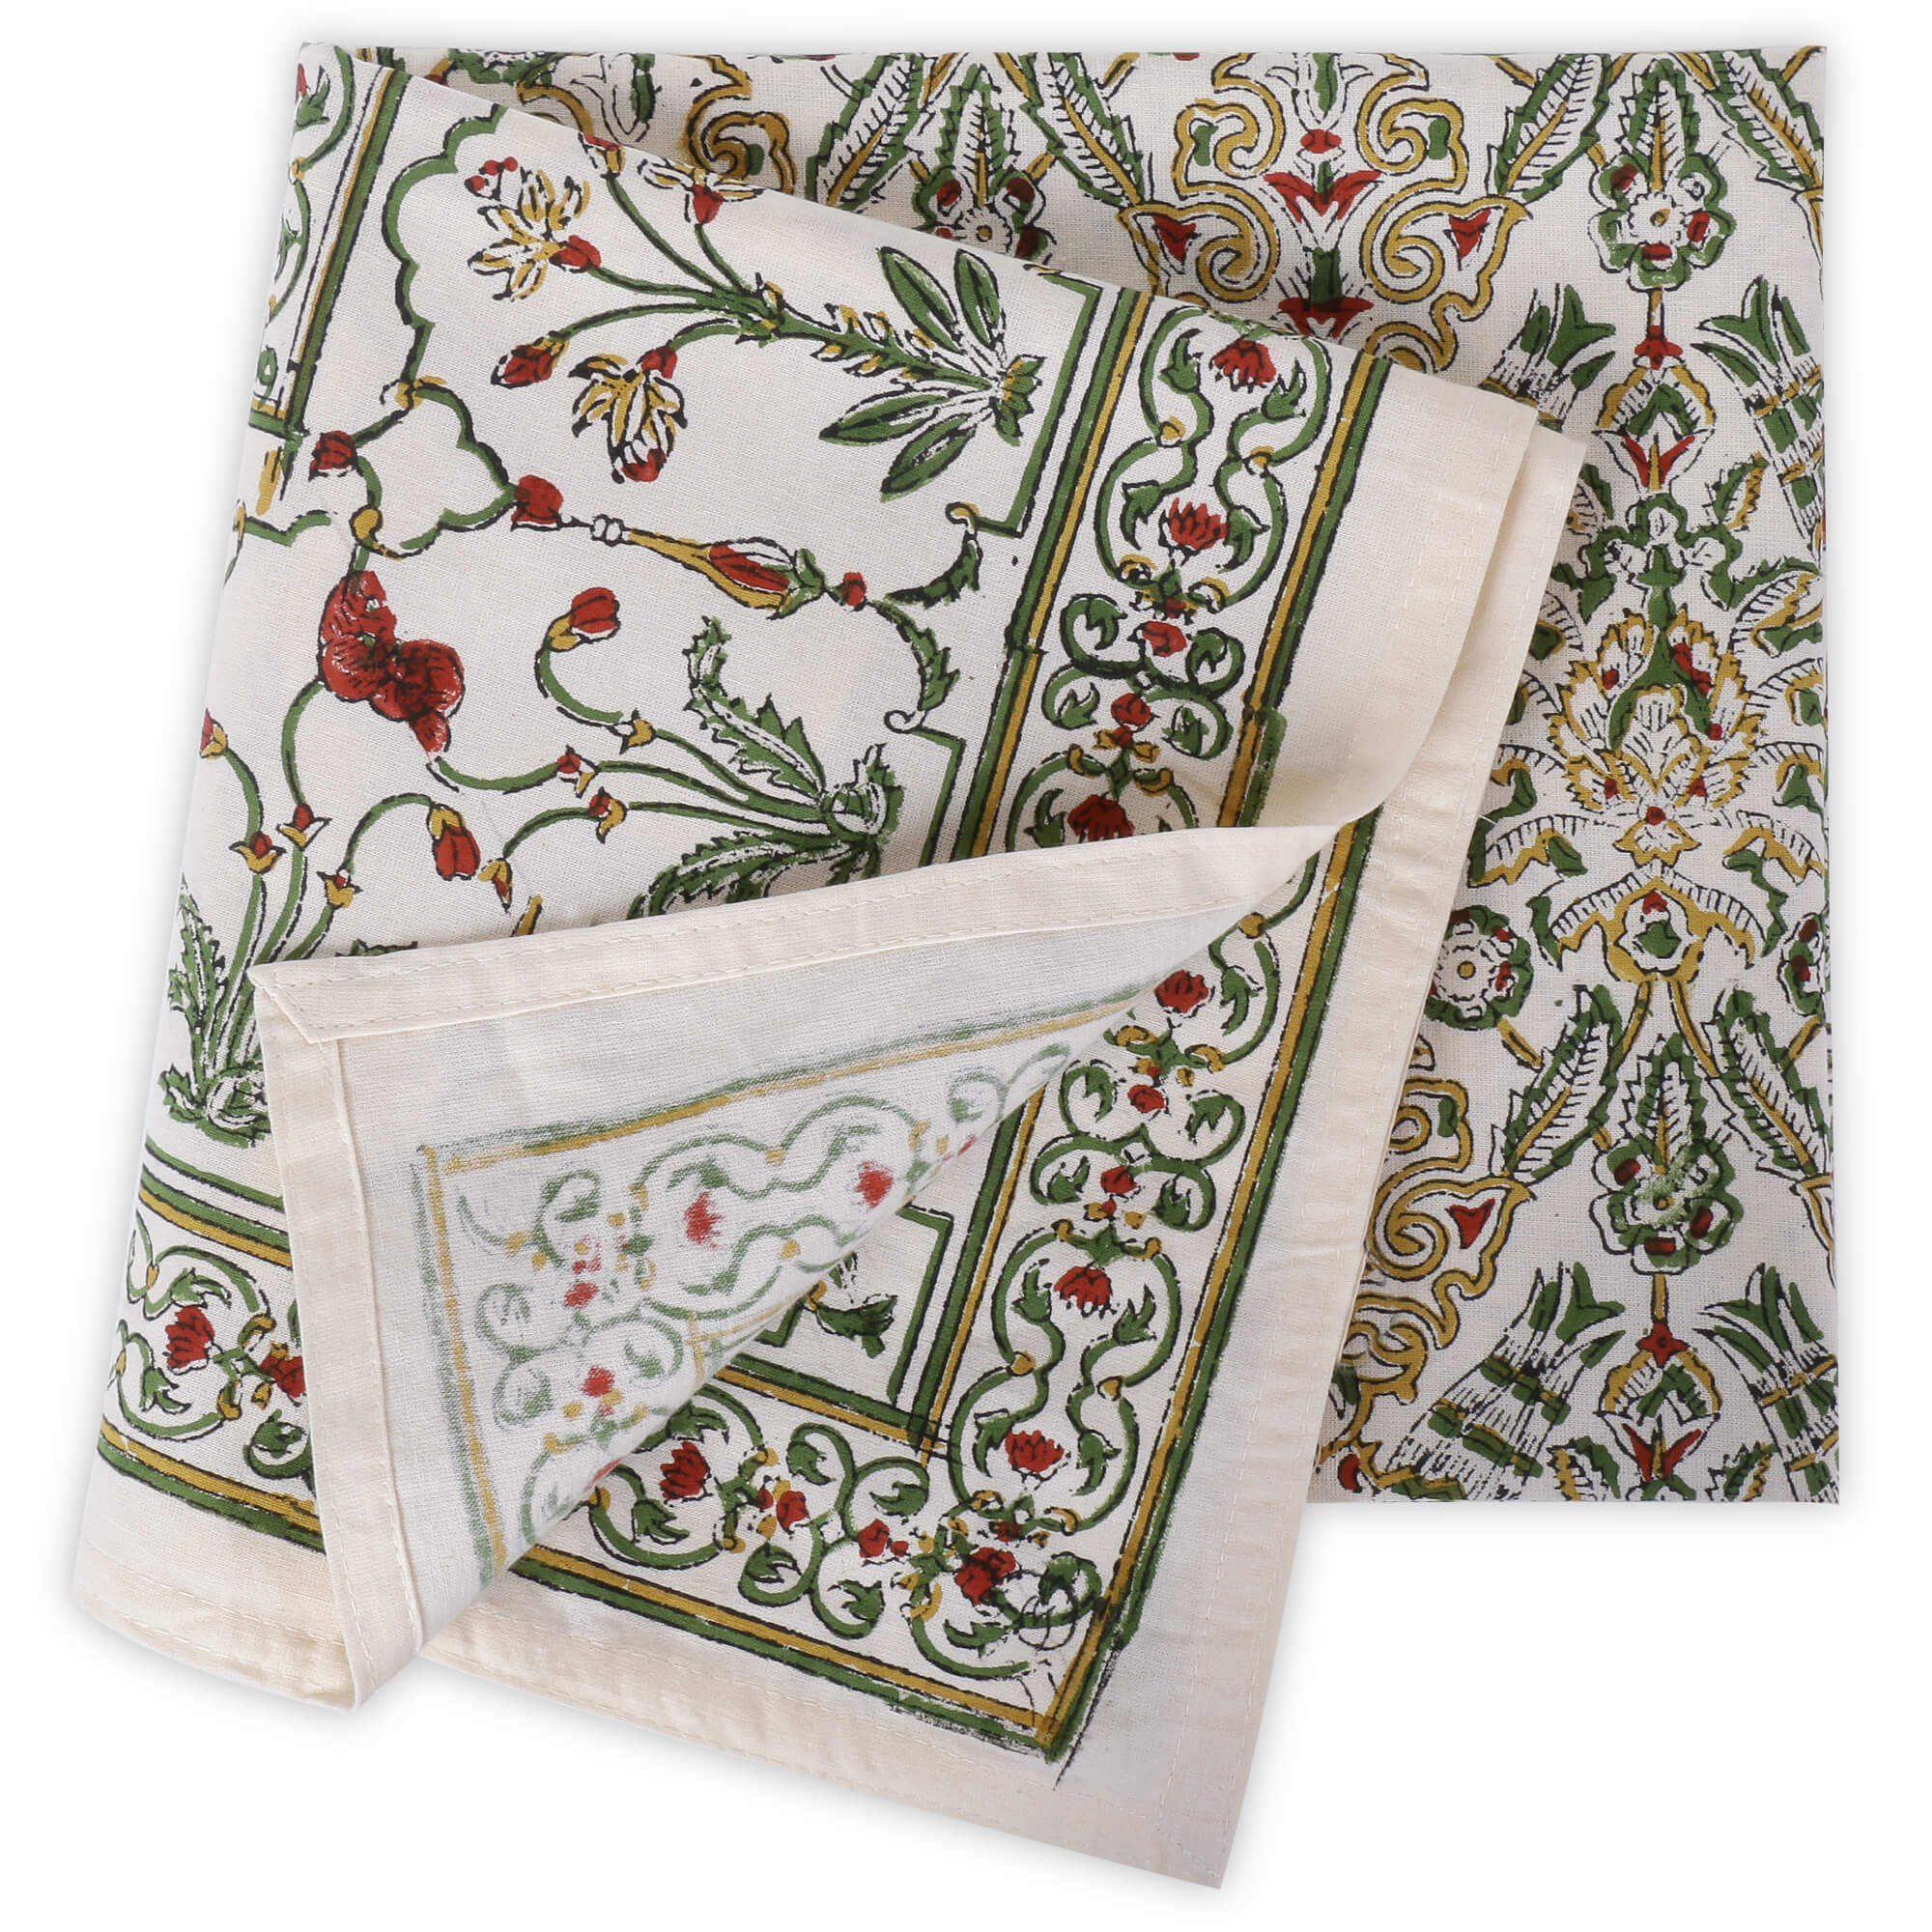 Jaipuri 6 Seater Cotton Table Cover - 7965